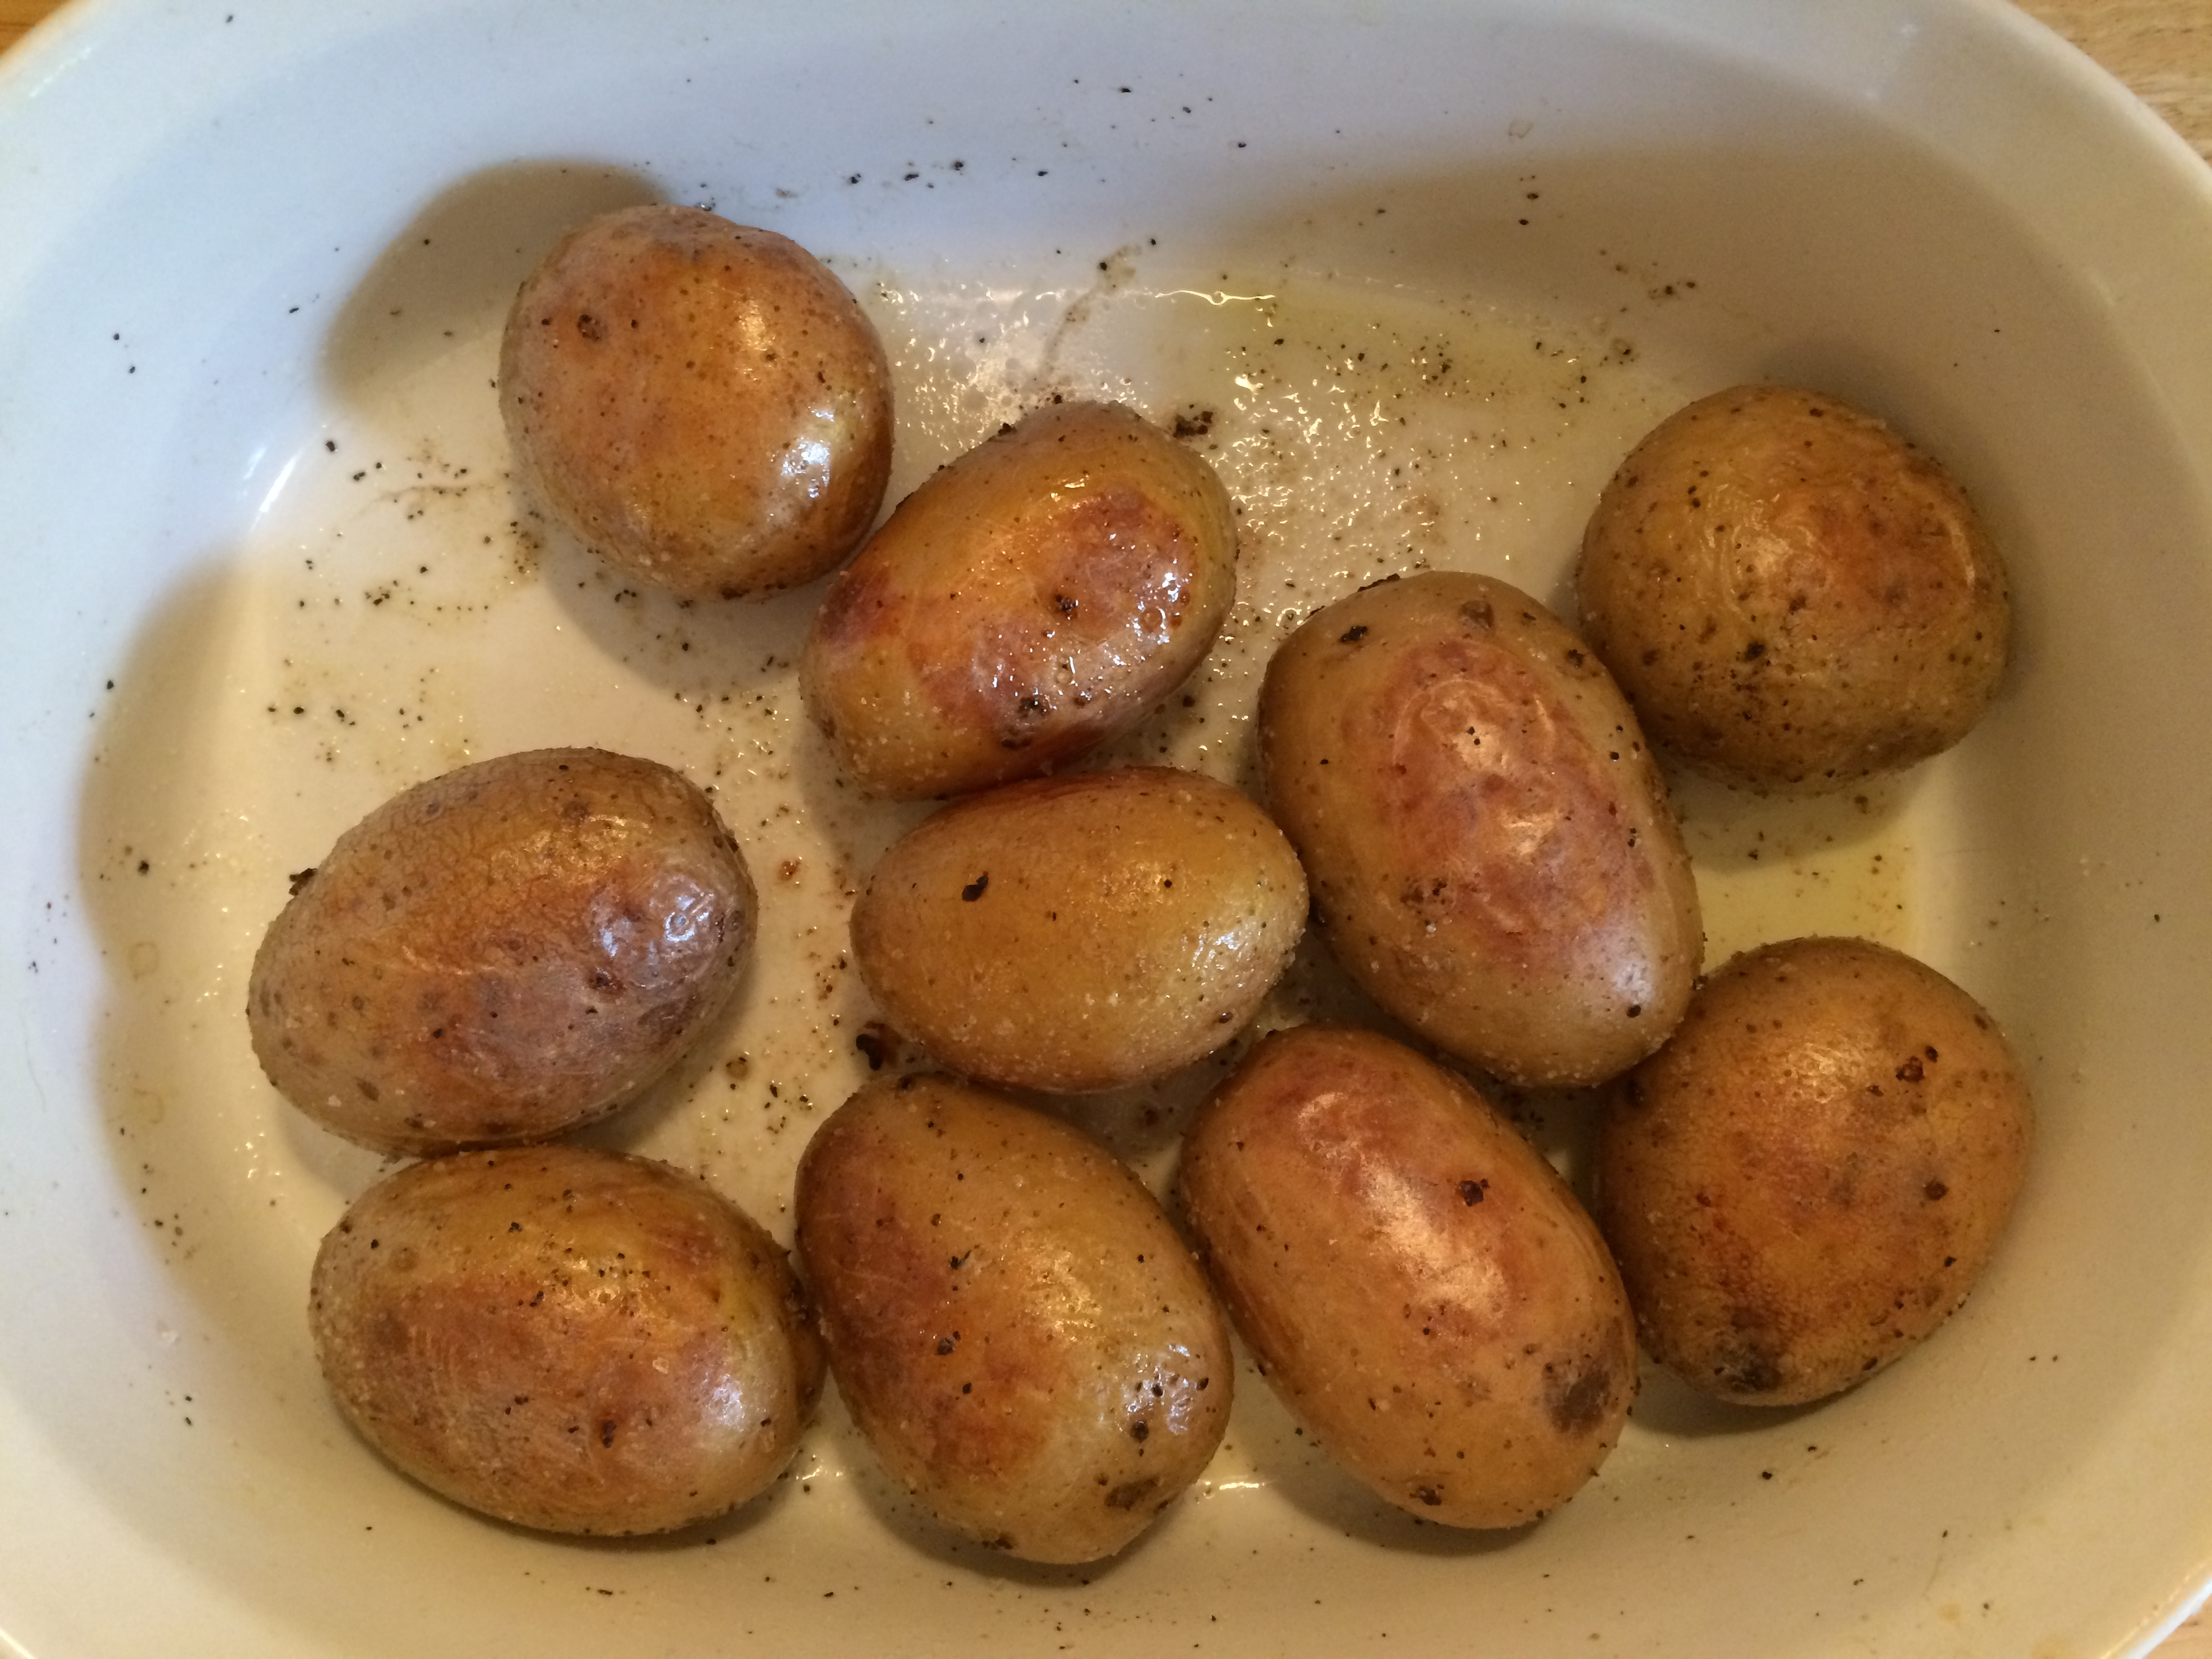 organic baked potatoes with olive oil, salt, and pepper